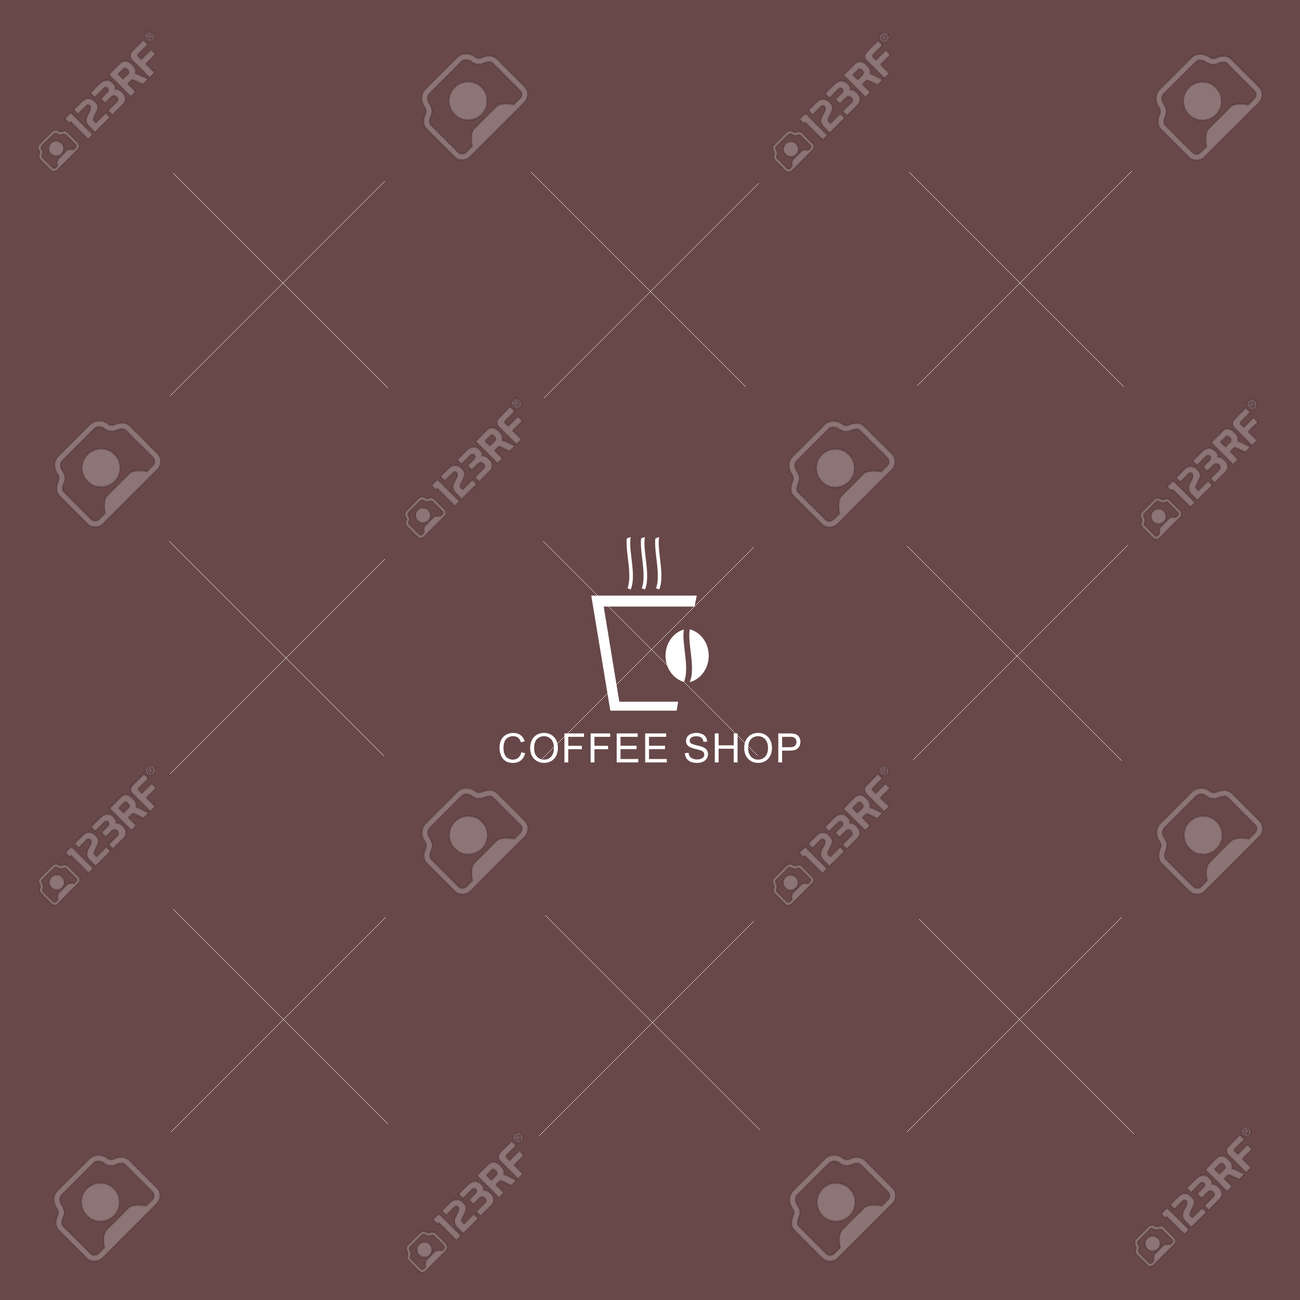 Coffee Shop Logo Simple Natural Home Logo Design Cafe Or Restaurant Royalty Free Cliparts Vectors And Stock Illustration Image 153250992